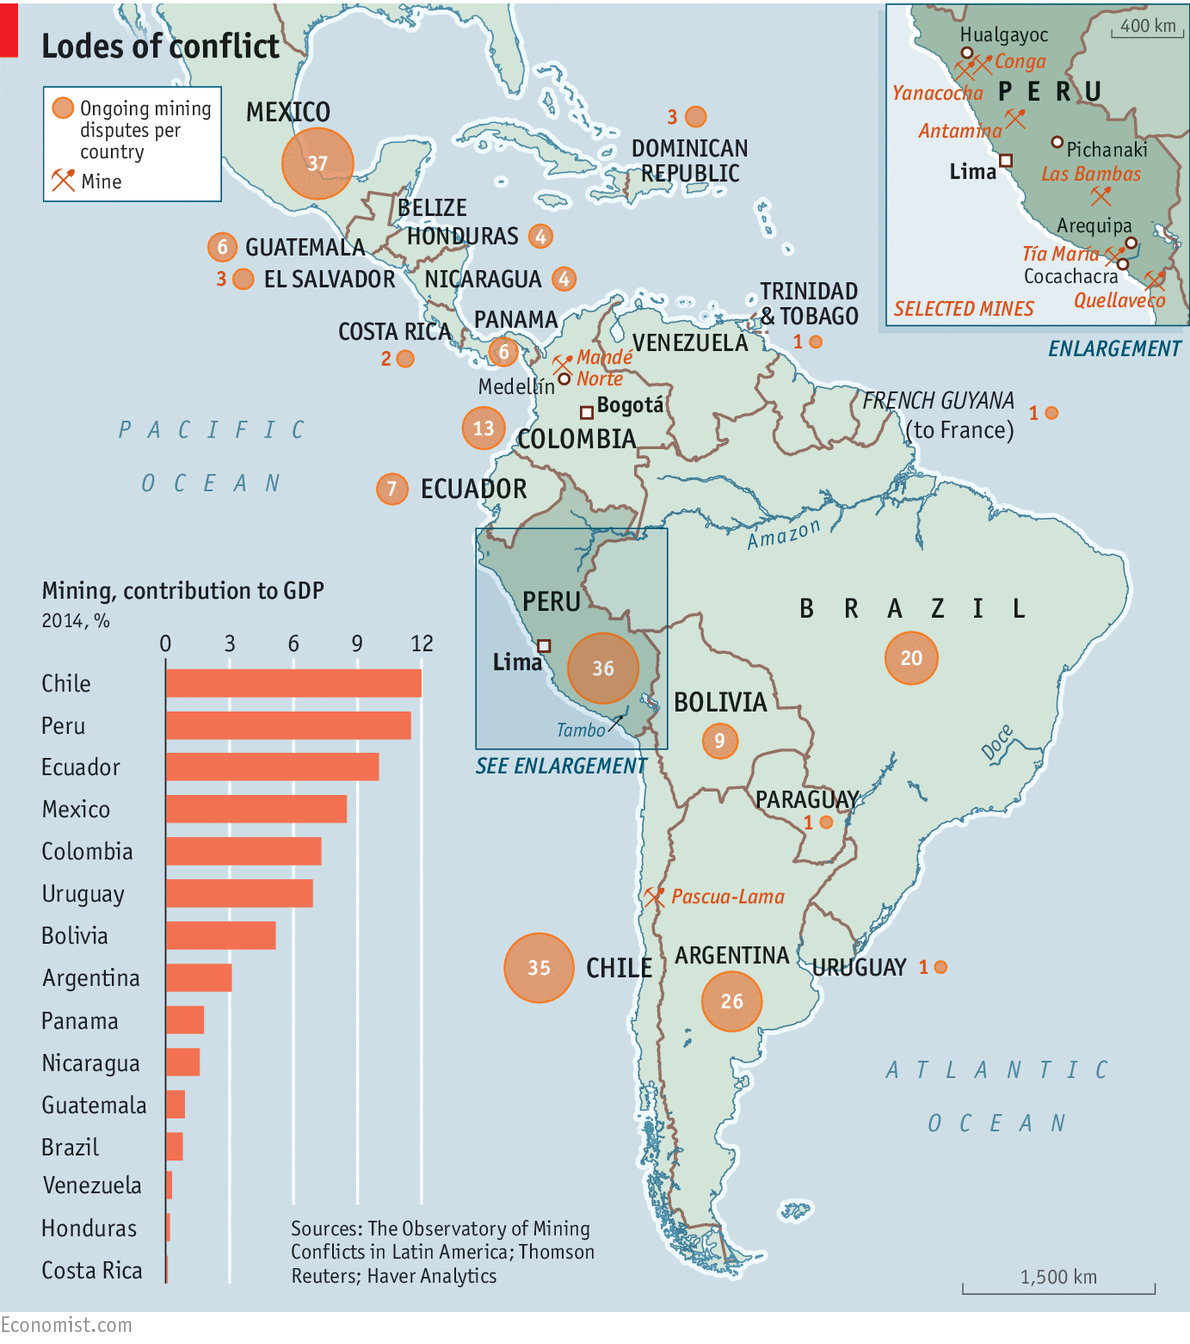 Disputes over mining operations within Latin American countries. Taken from The Economist.